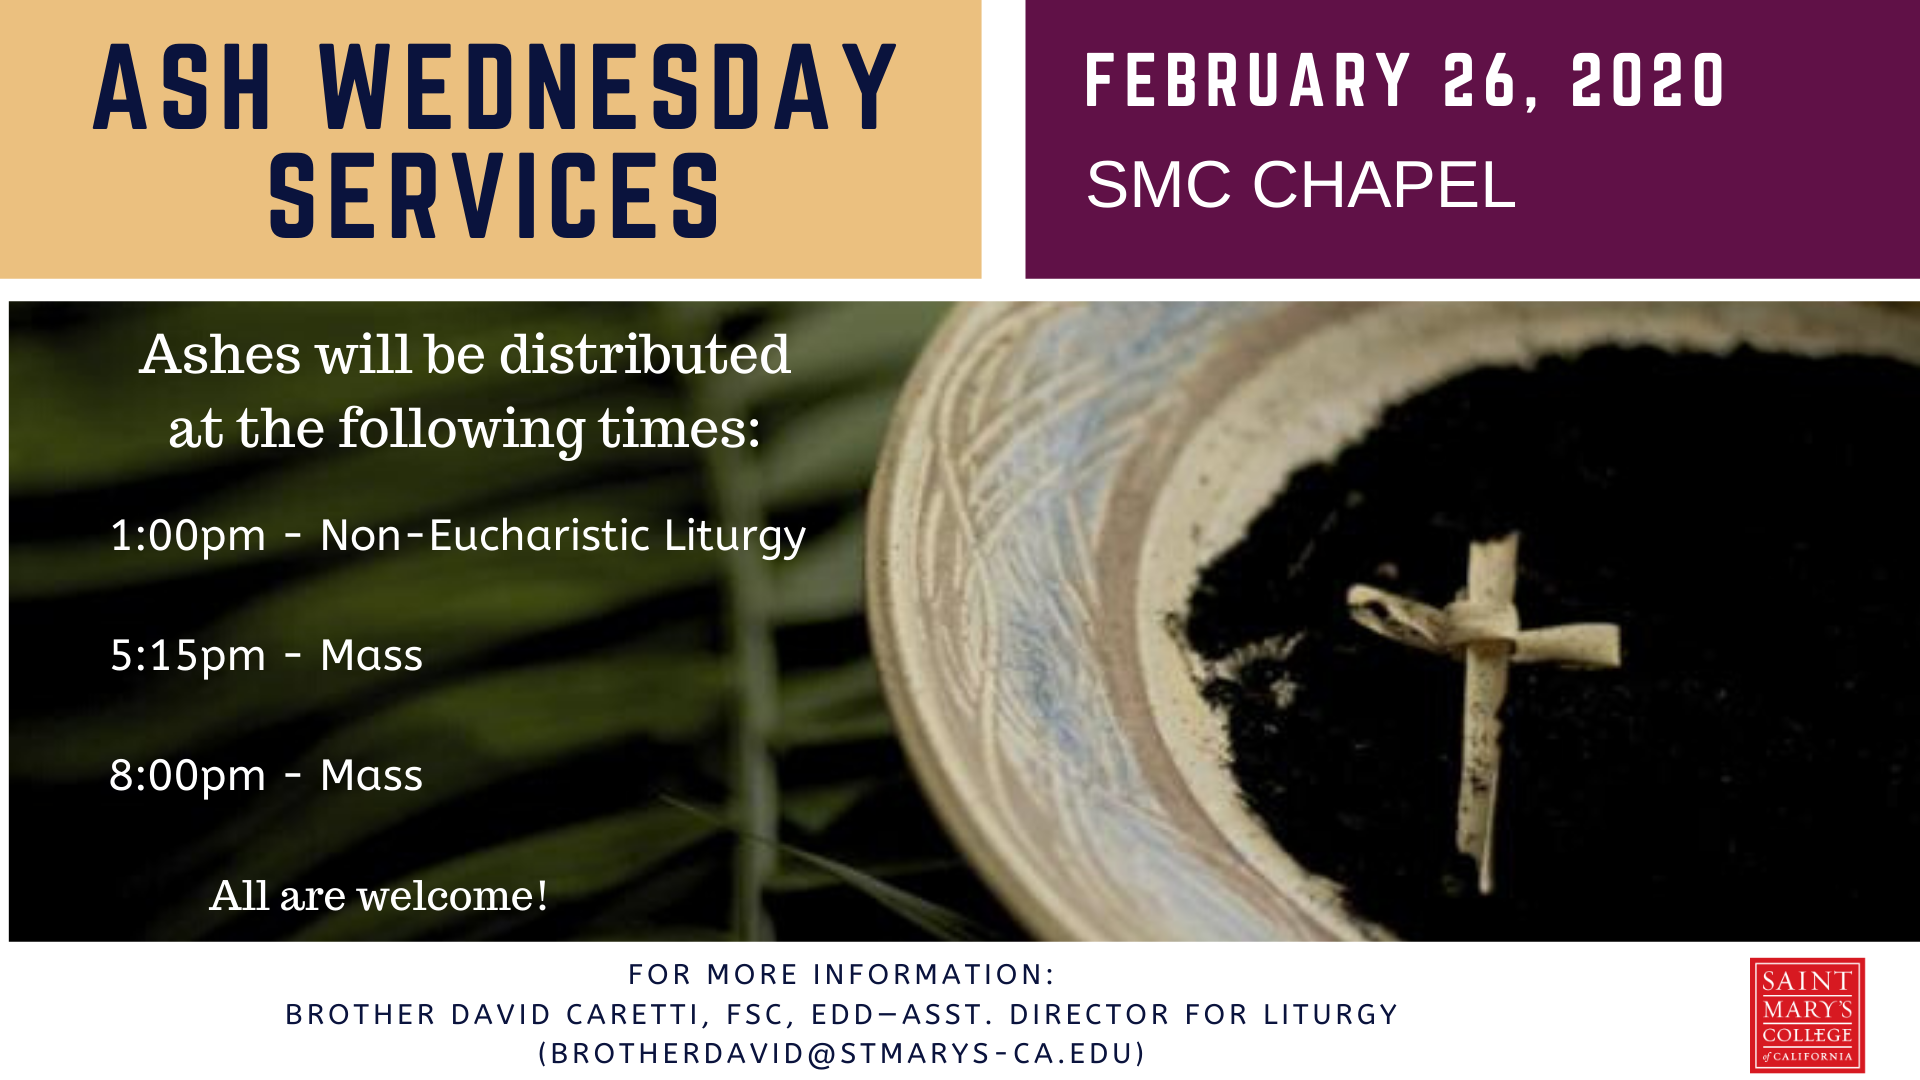 Ash Wednesday Services times